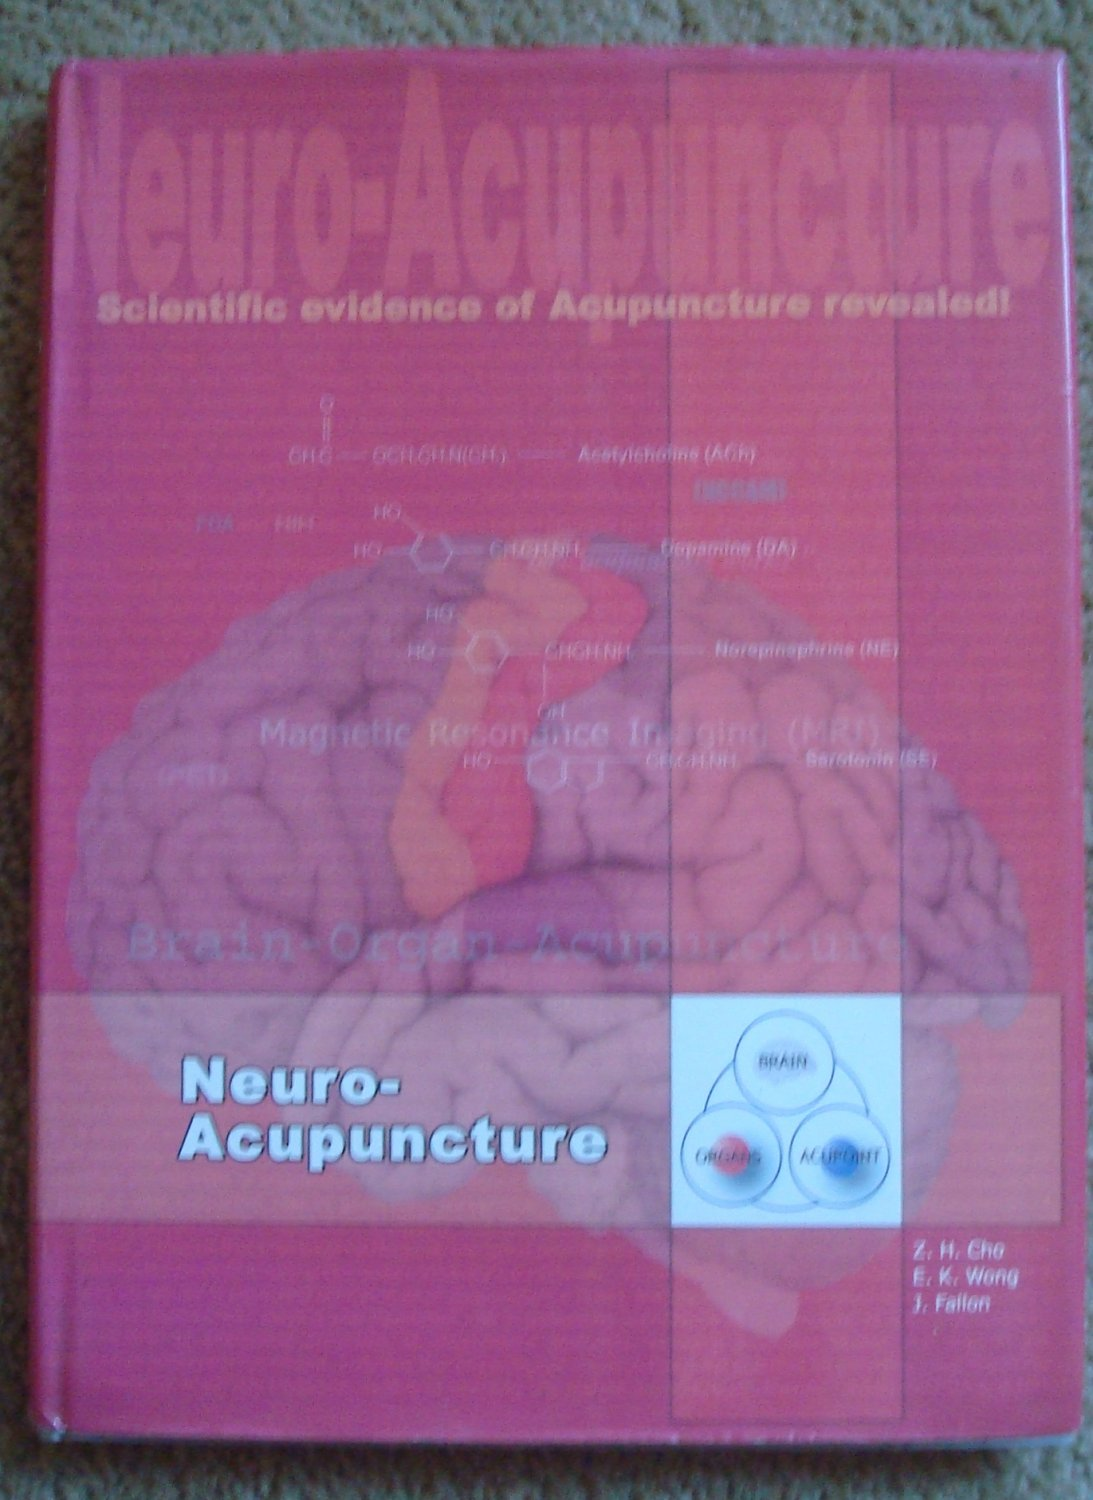 Neuro-Acupuncture: Scientific Evidence of Acupuncture Revealed